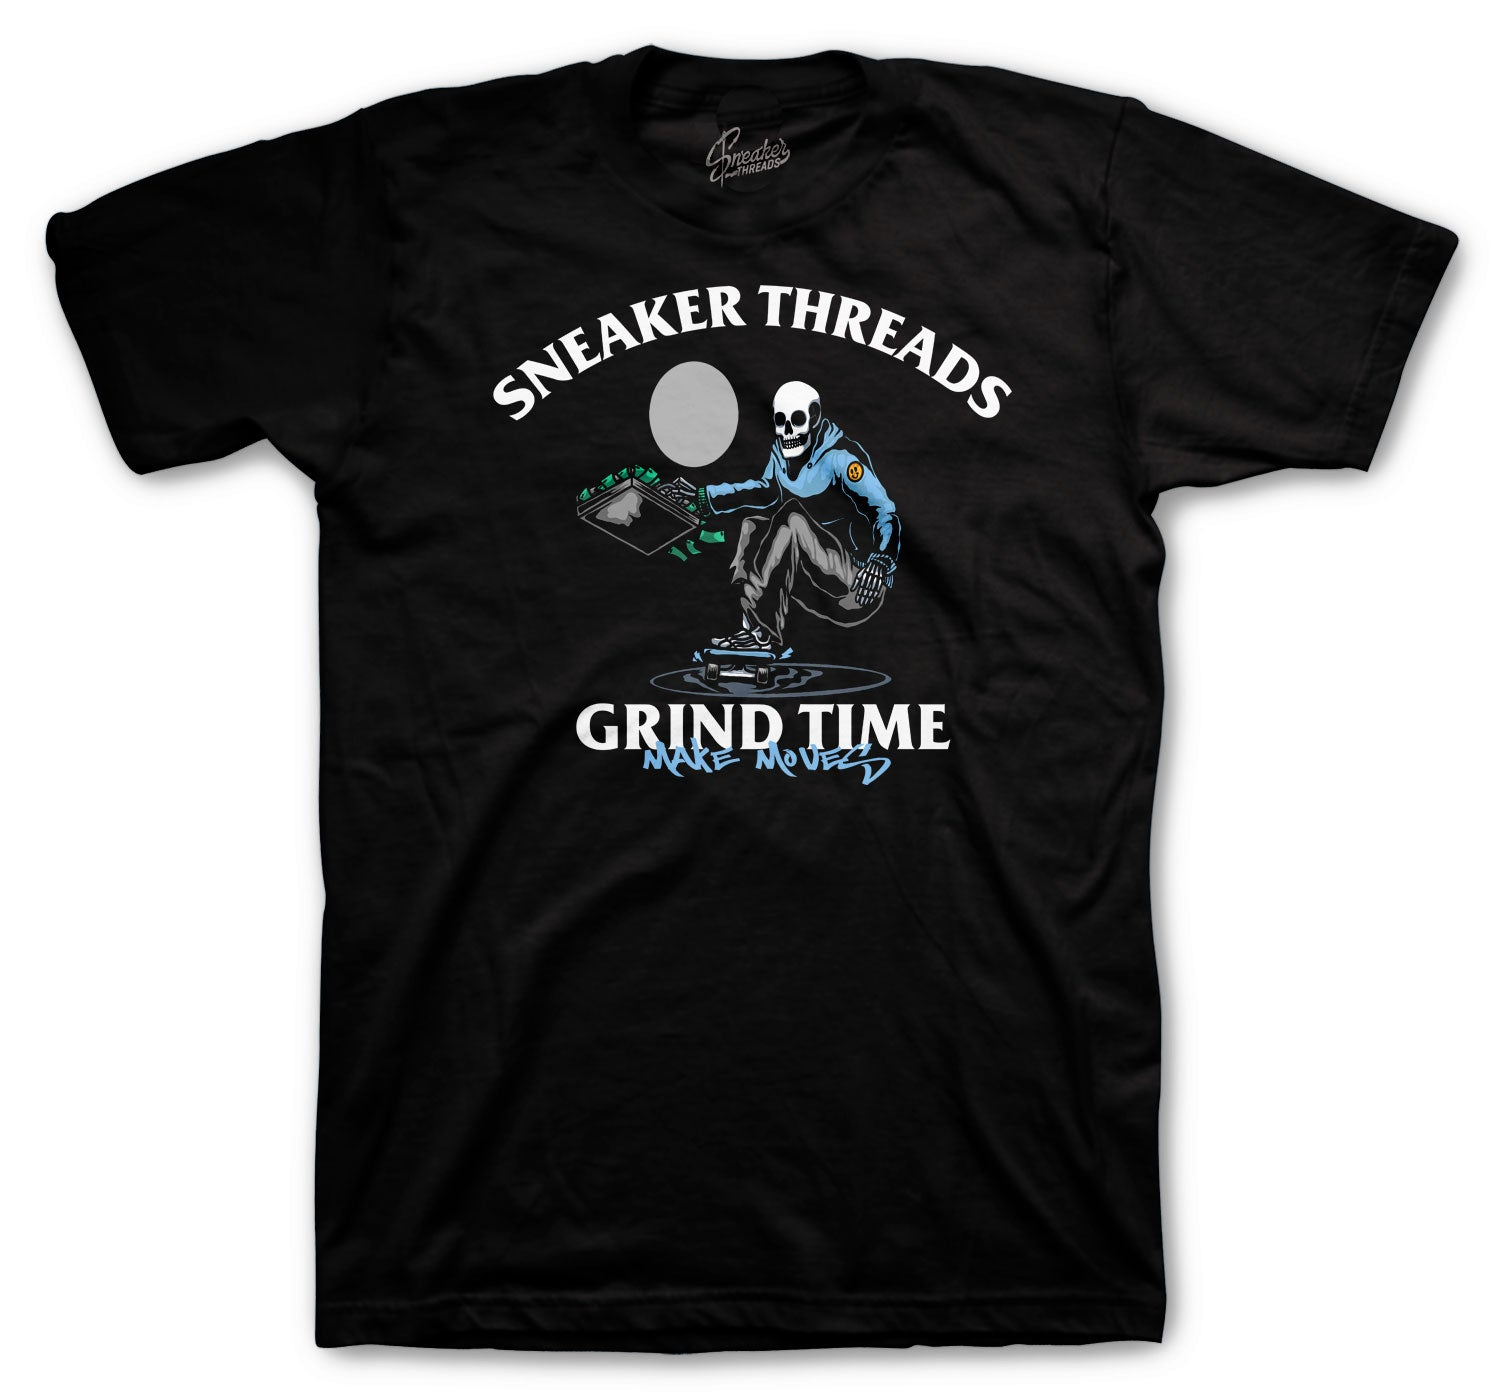 Jordan 1 Uni Blue Shirt - Grind Time - Black